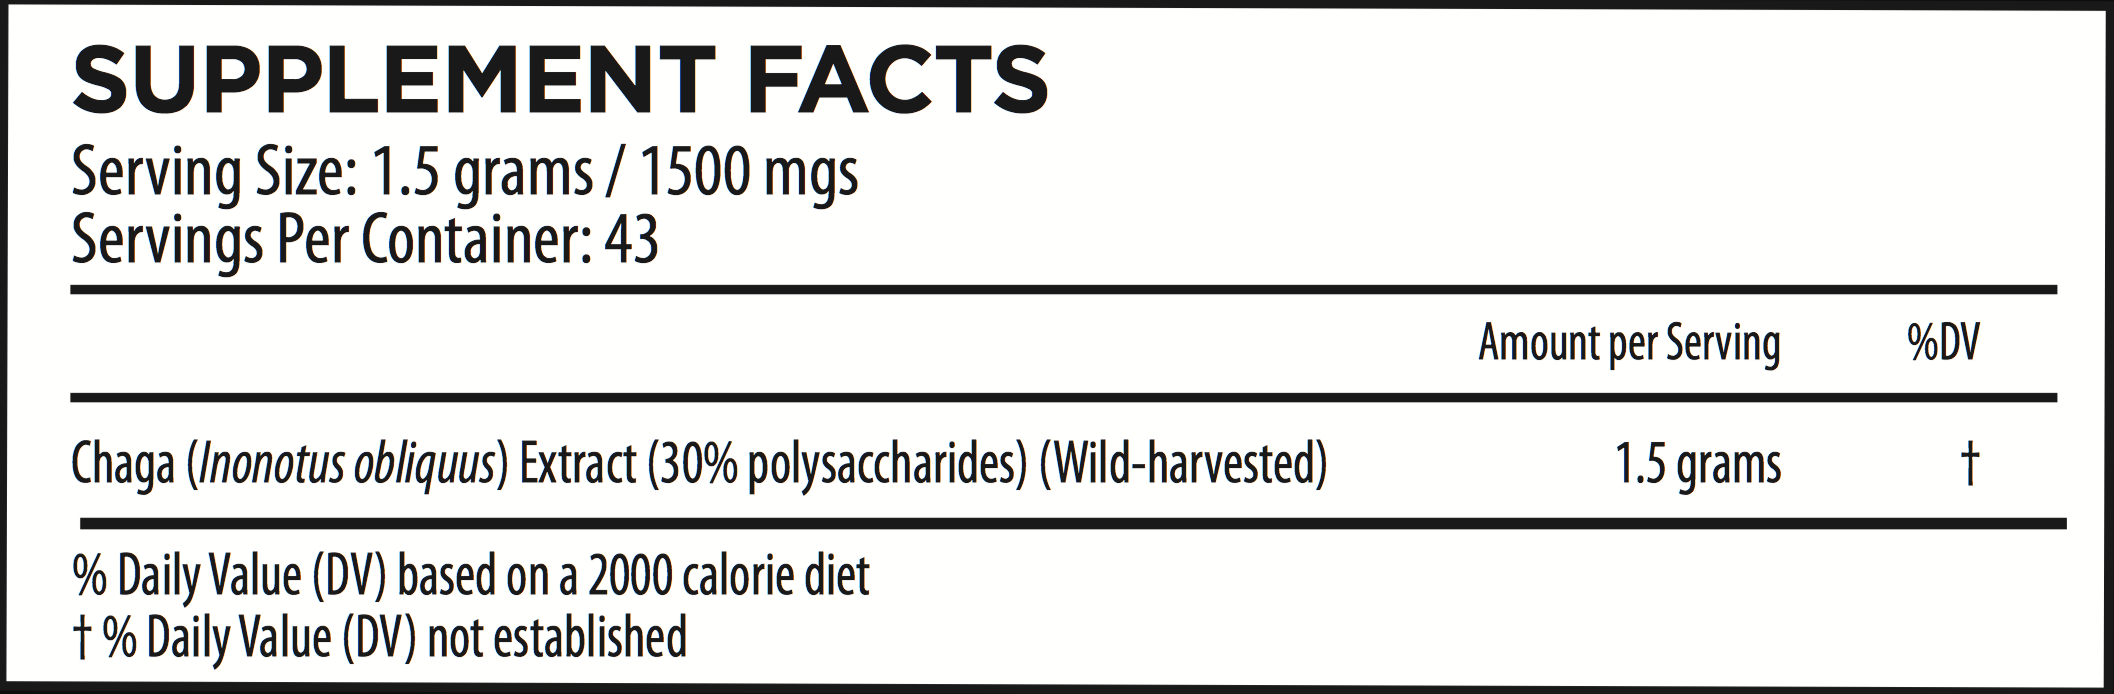 chaga-extract-supplement-facts.png